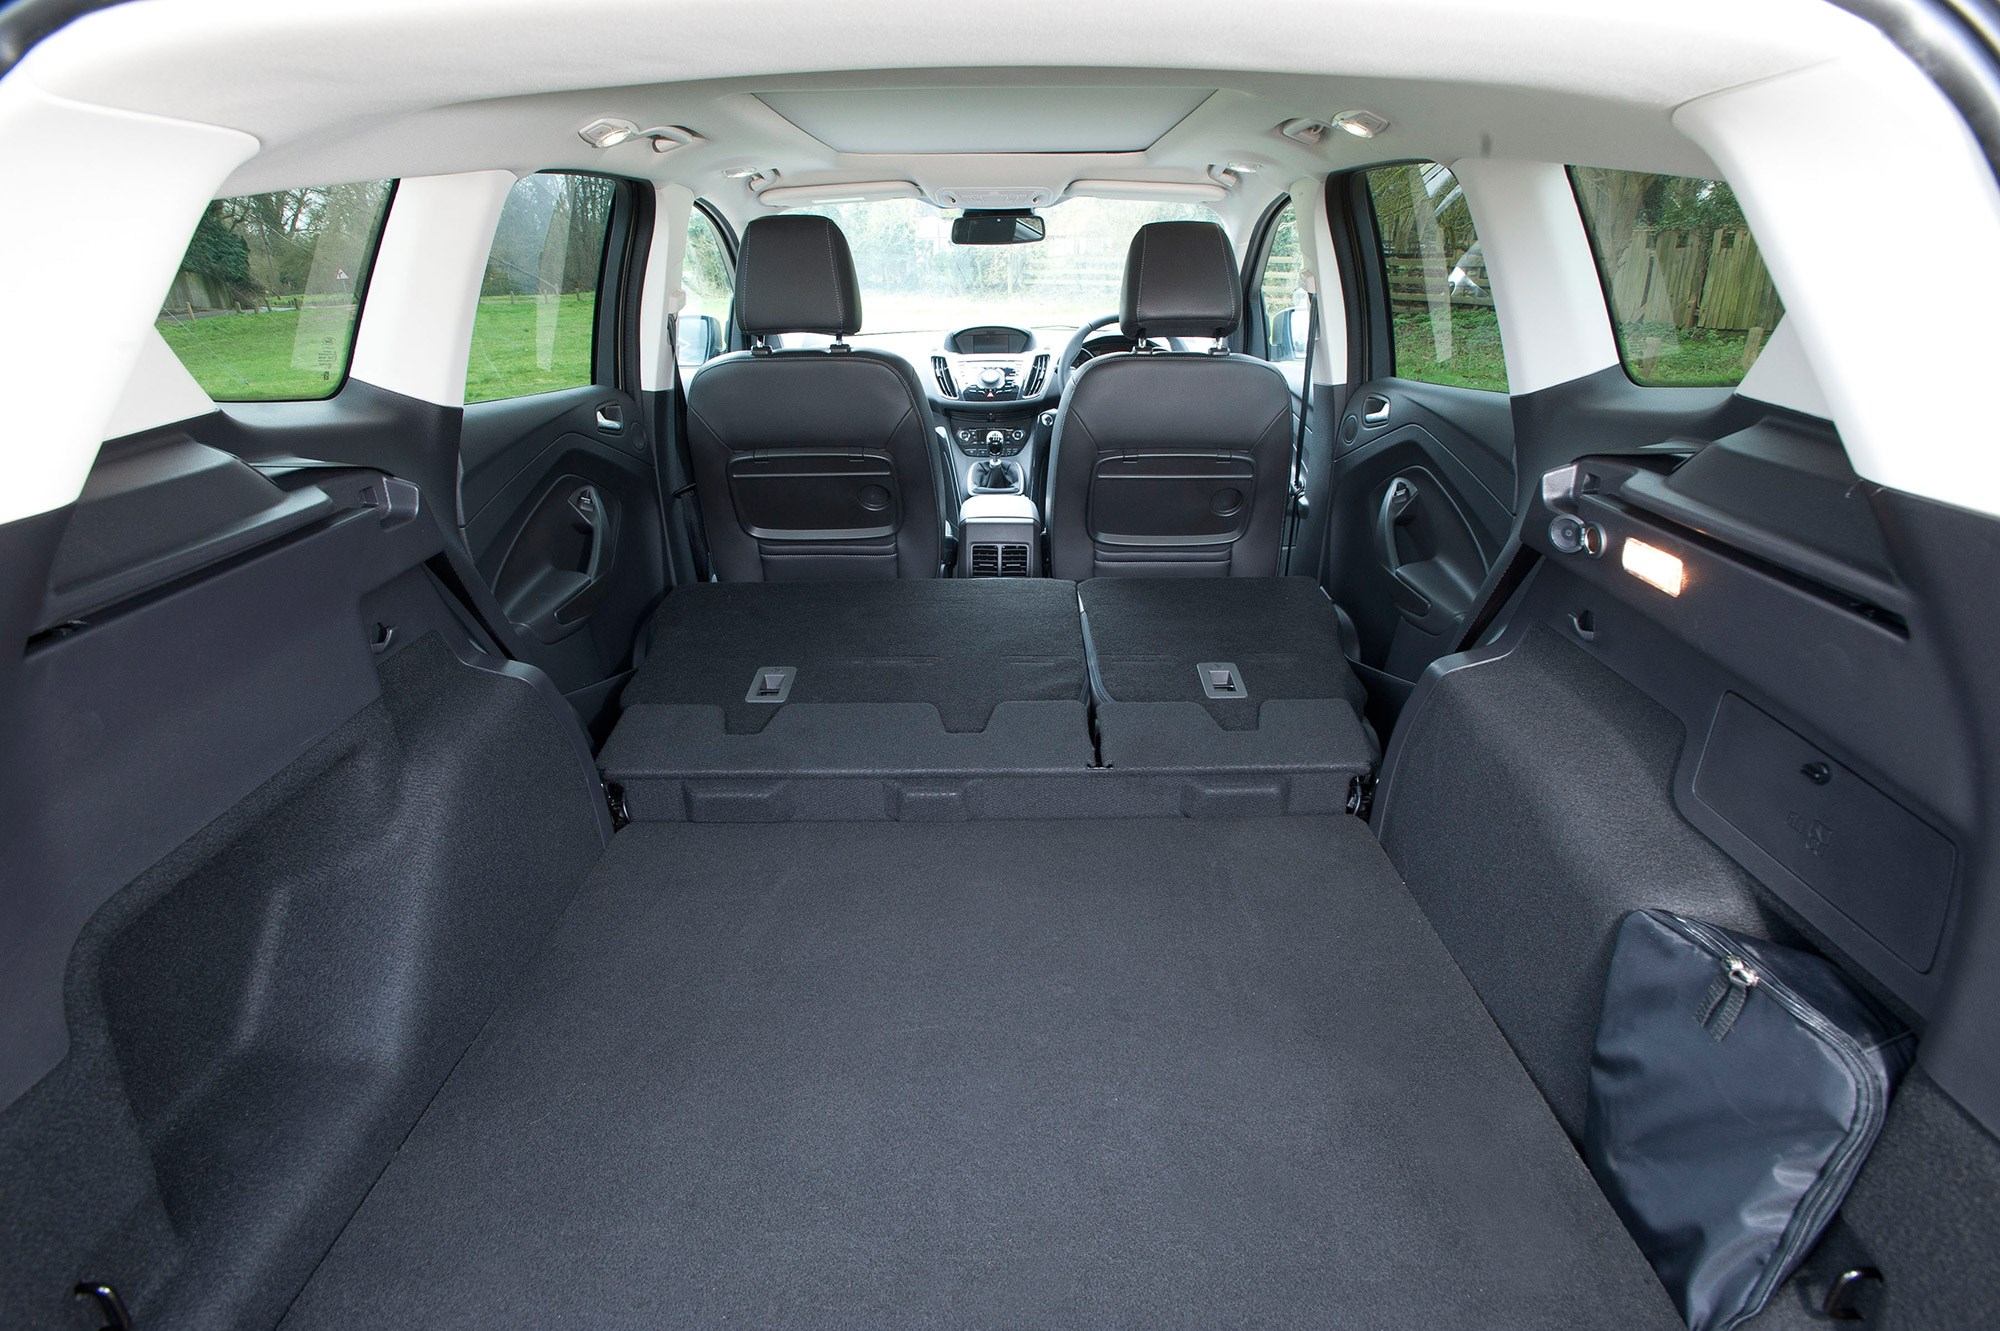 Custom Seat Covers moreover 2015 Ford Focus St Information Brochure Bloomington Ford A Ford Dealership For Indianapolis Greenwood Martinsville Bedford together with Explorer as well 2017 Ford Explorer Xlt Sport Pack together with Espace 2015. on ford escape seats 7